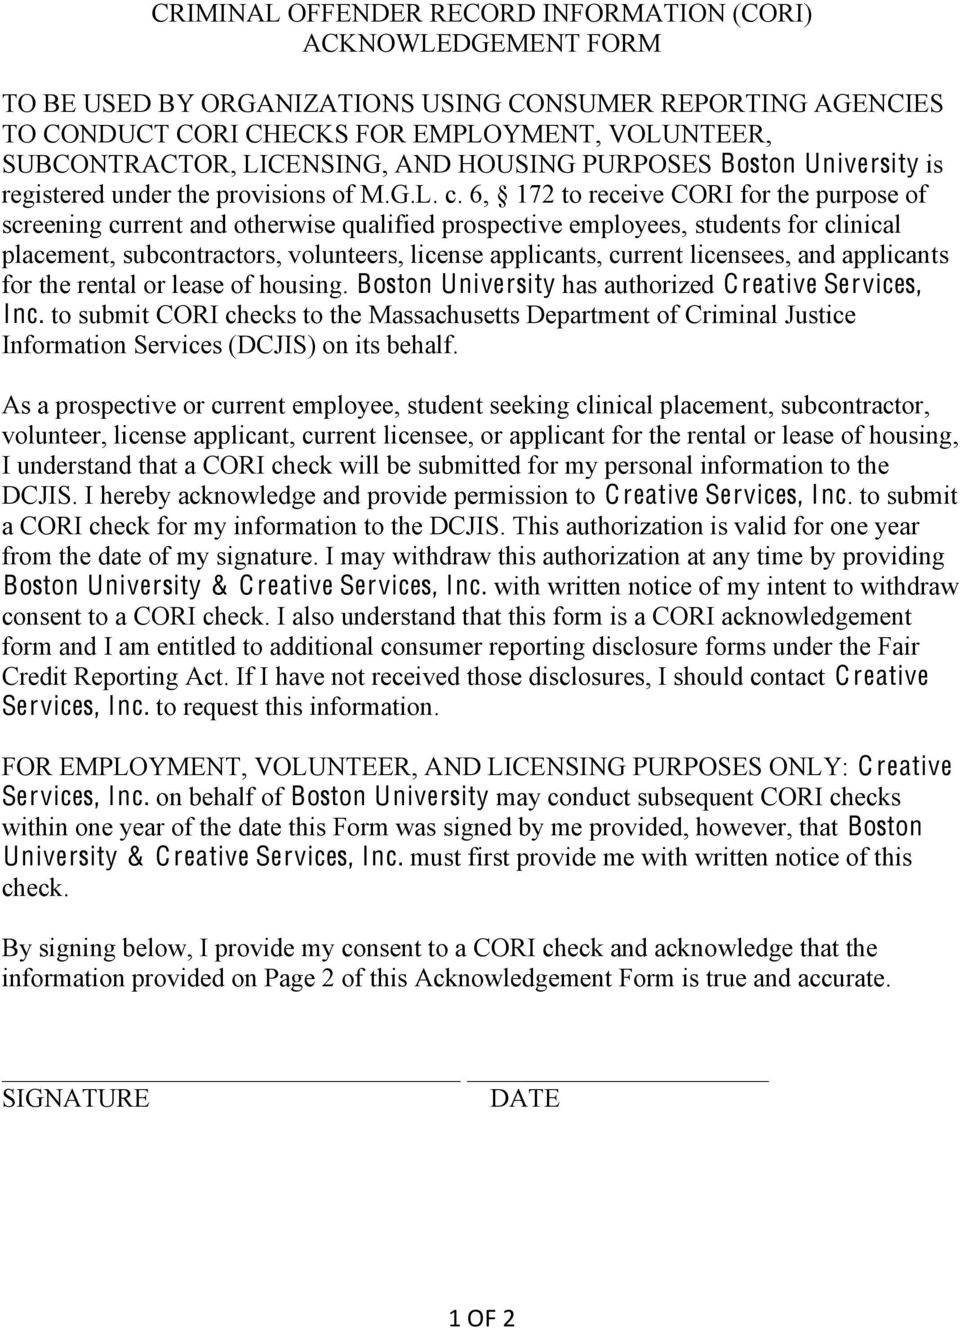 6, 172 to receive CORI for the purpose of screening current and otherwise qualified prospective employees, students for clinical placement, subcontractors, volunteers, license applicants, current